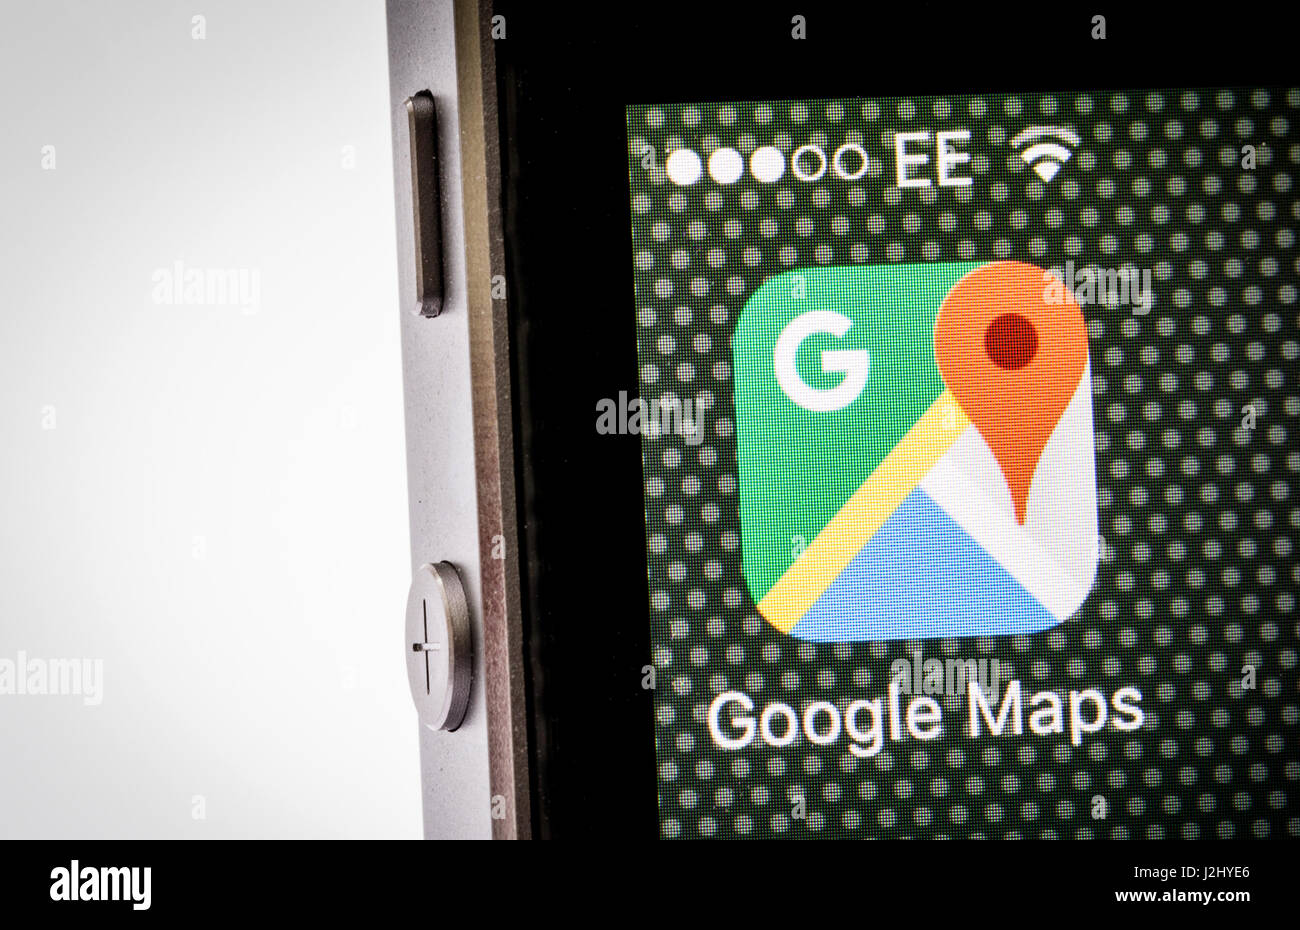 Google Maps App on an iPhone - Stock Image